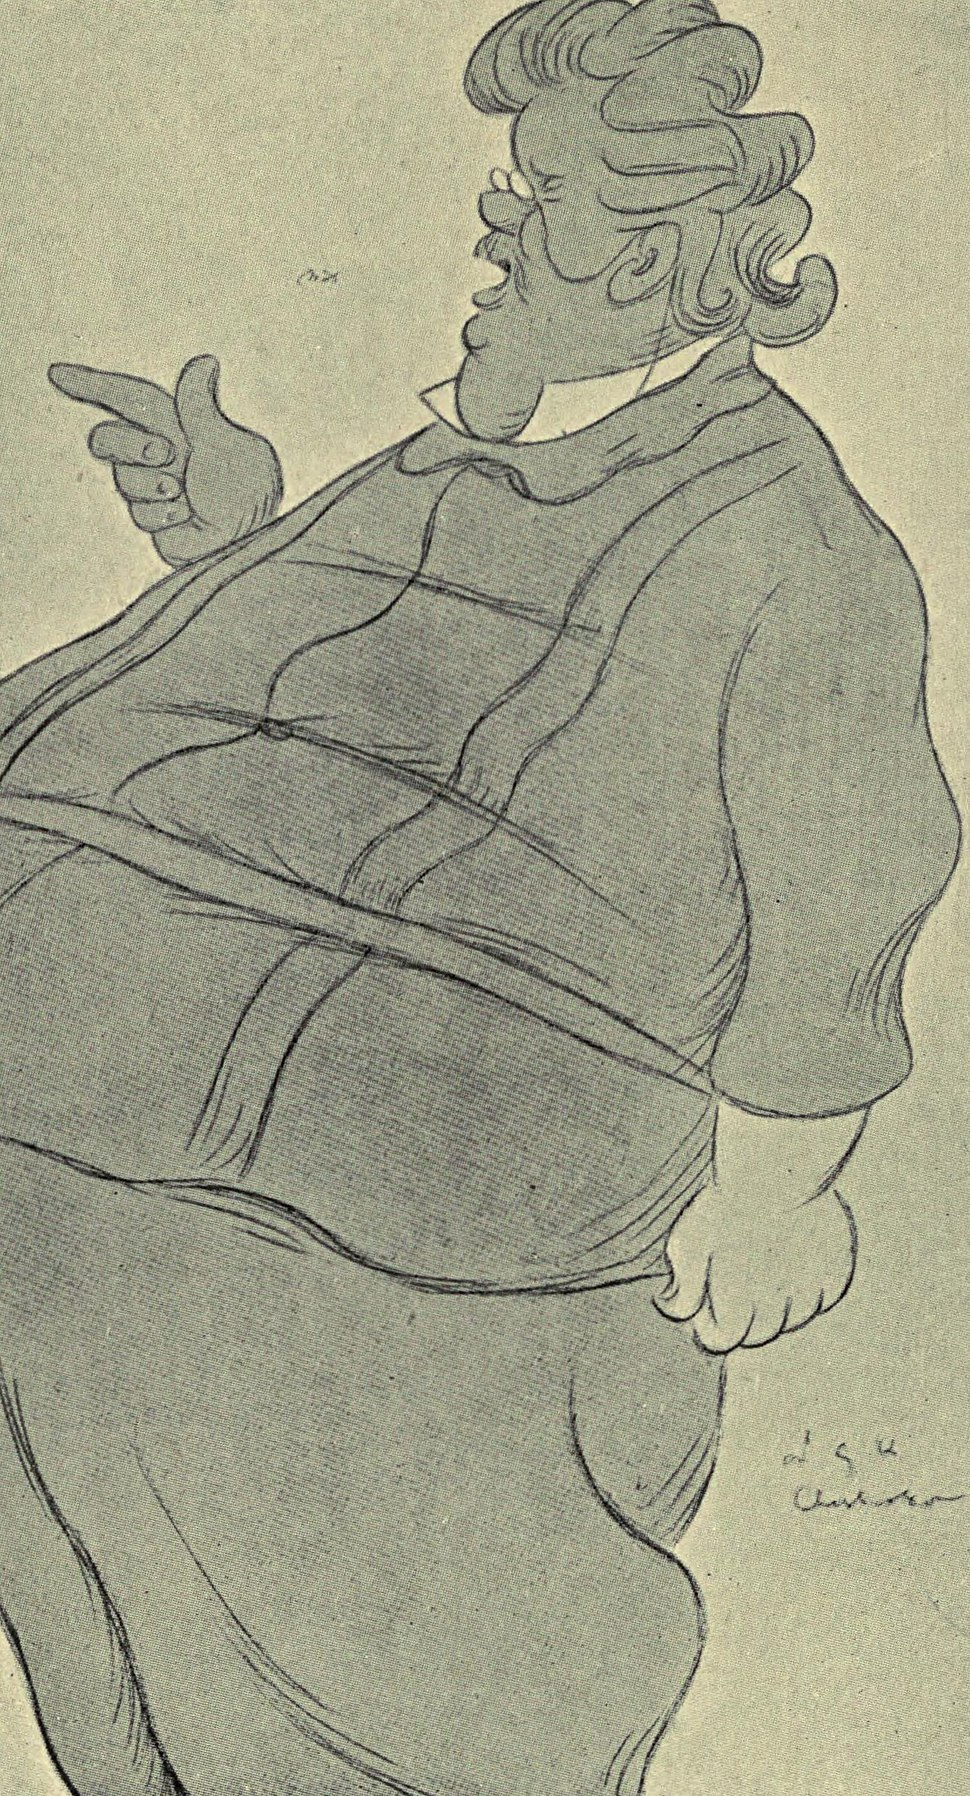 Caricature of Chesterton, by Beerbohm